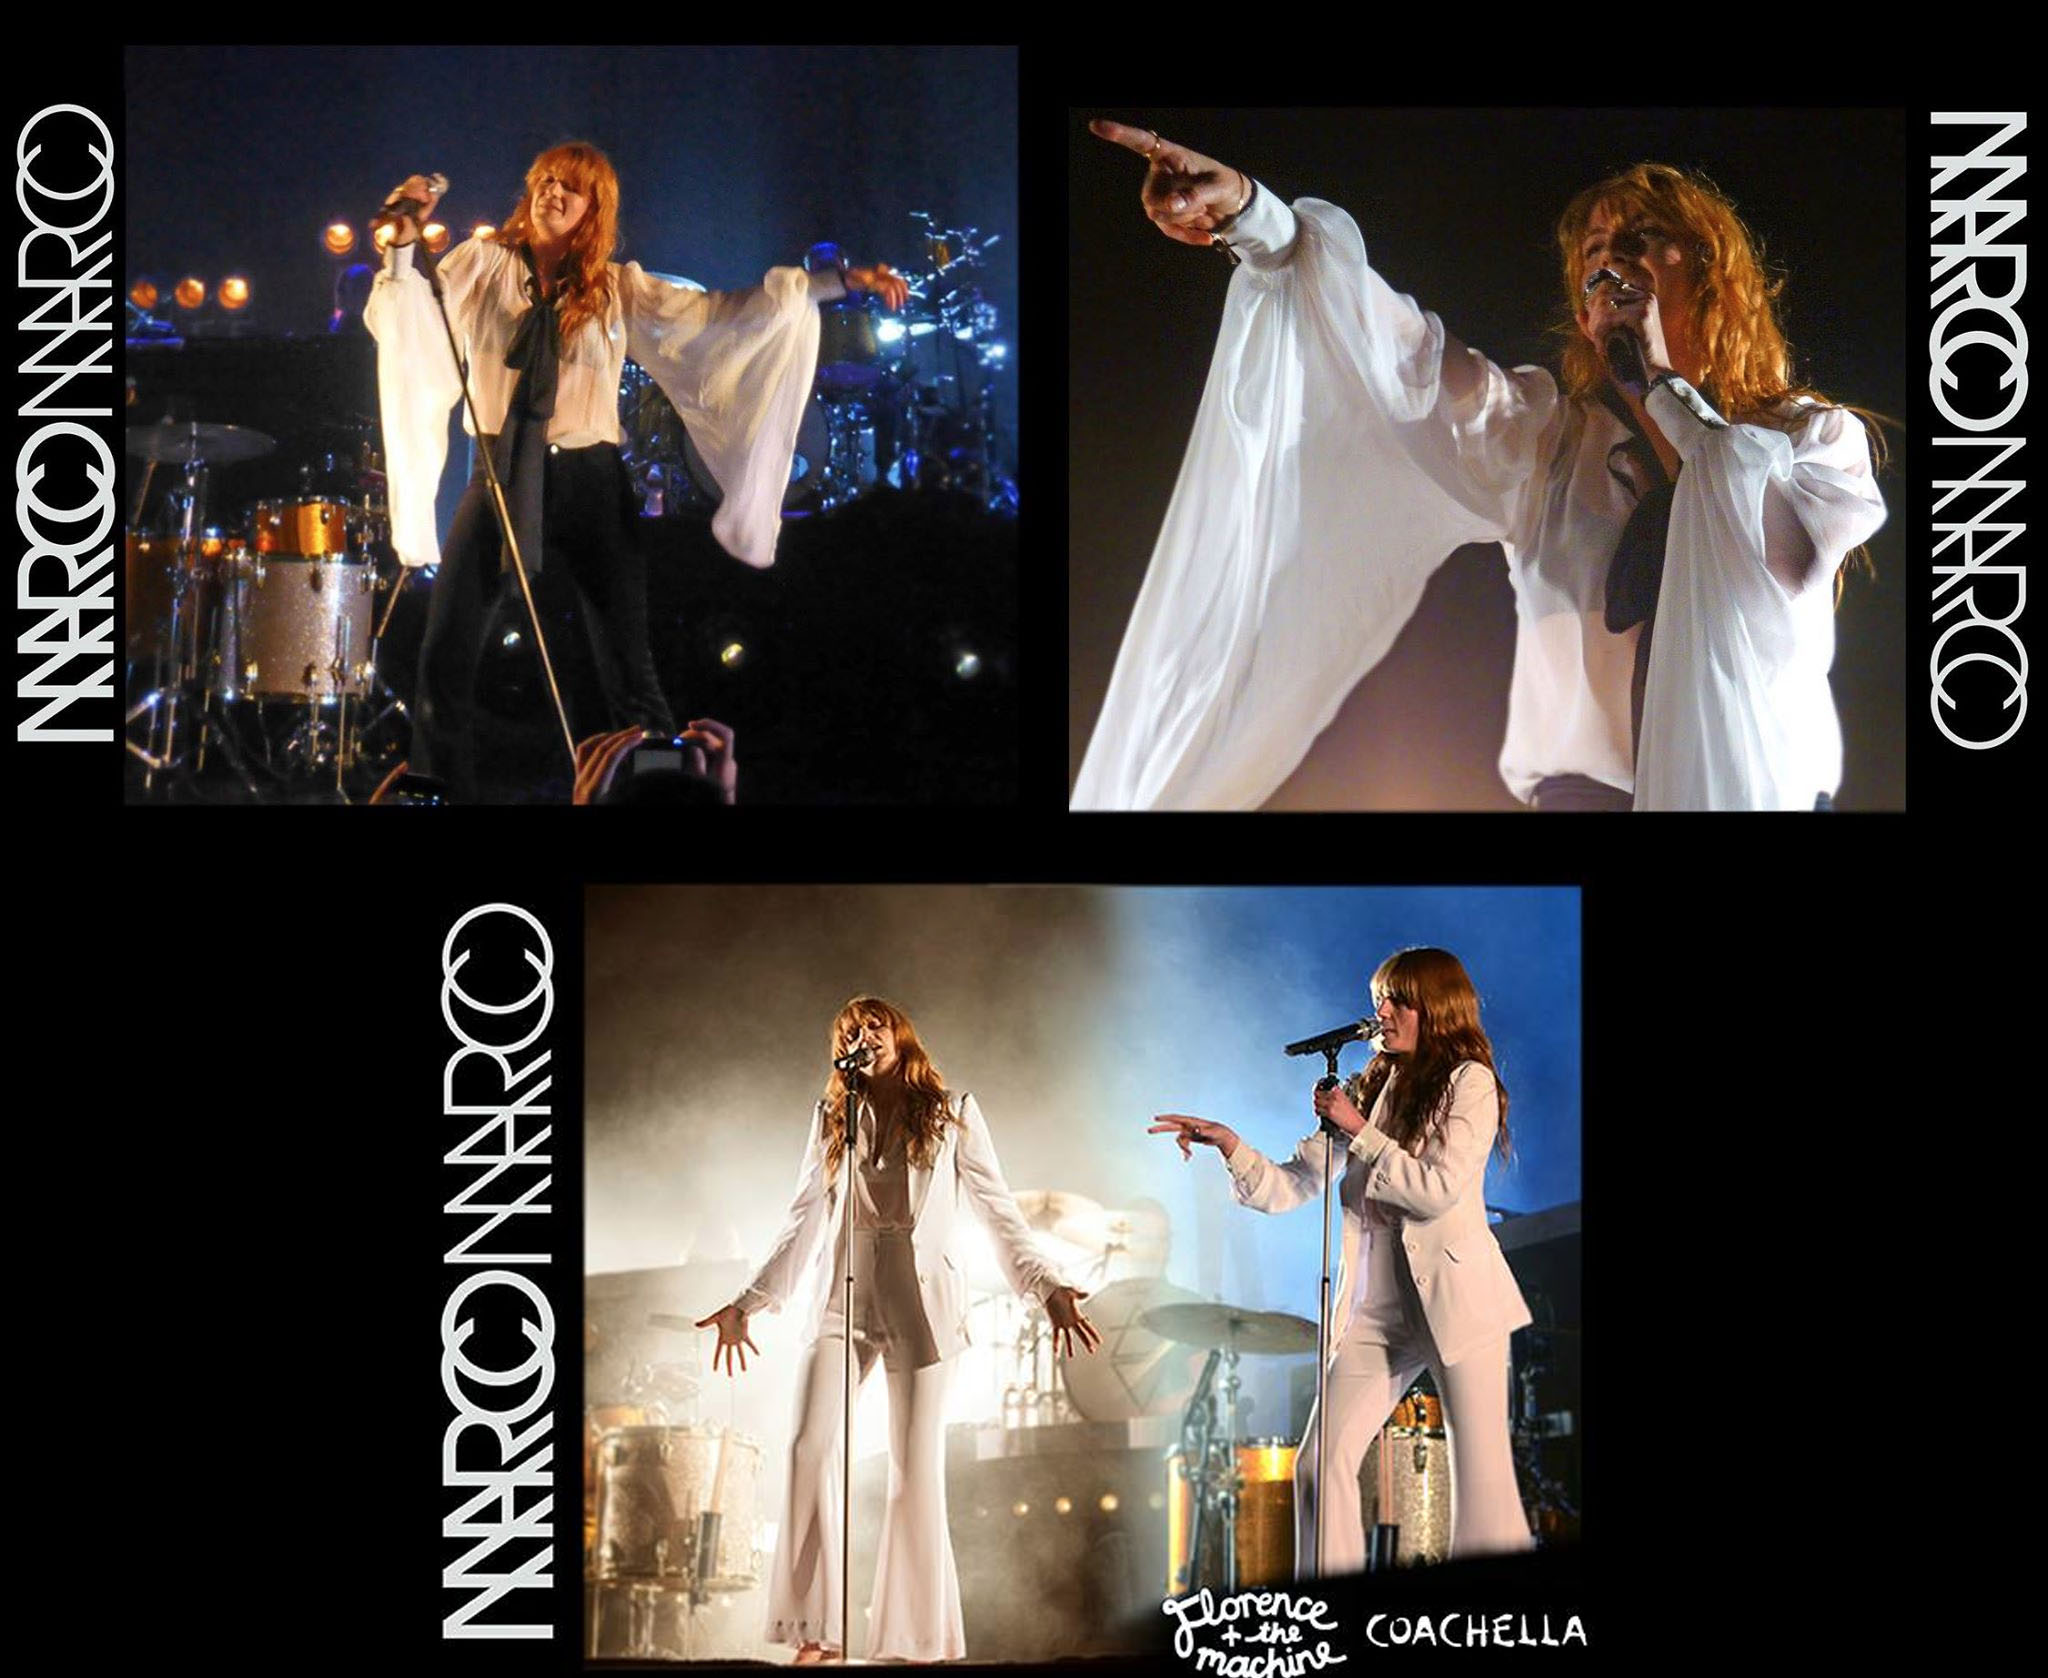 florence and the machine fan